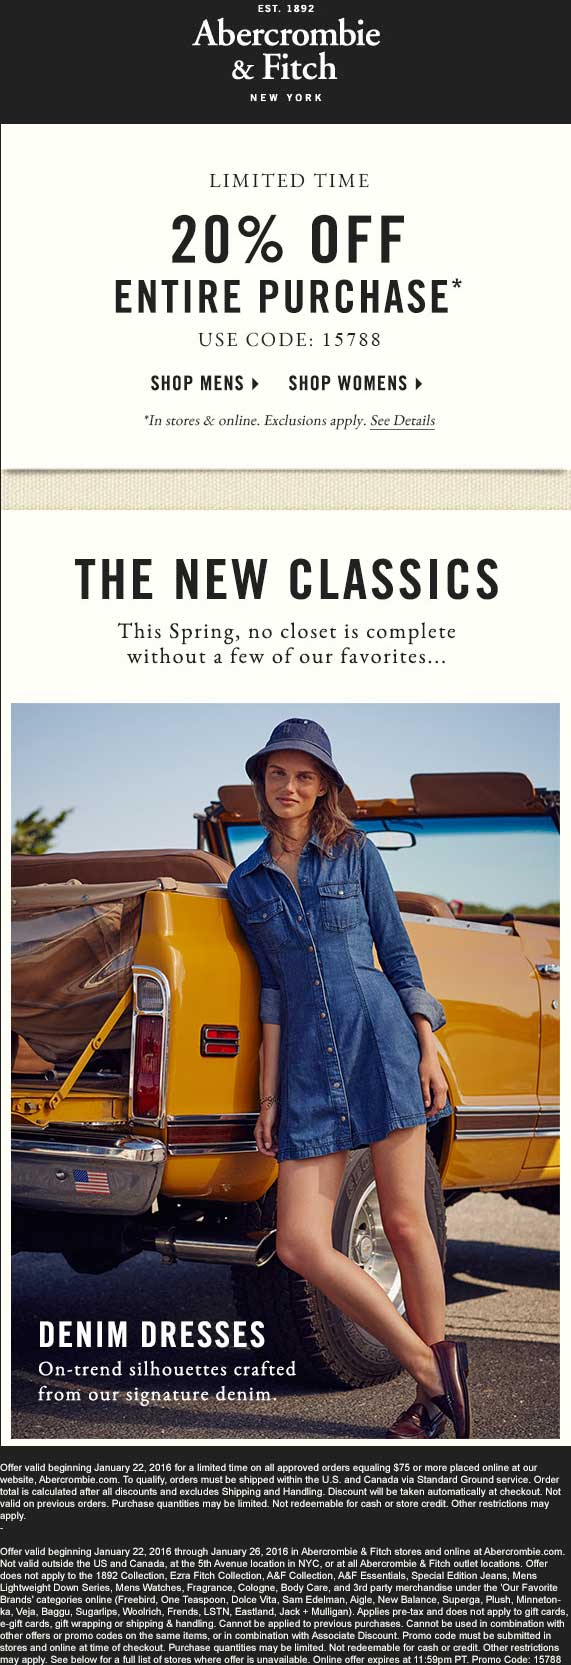 Abercrombie & Fitch Coupon May 2018 20% off at Abercrombie & Fitch, or online via promo code 15788